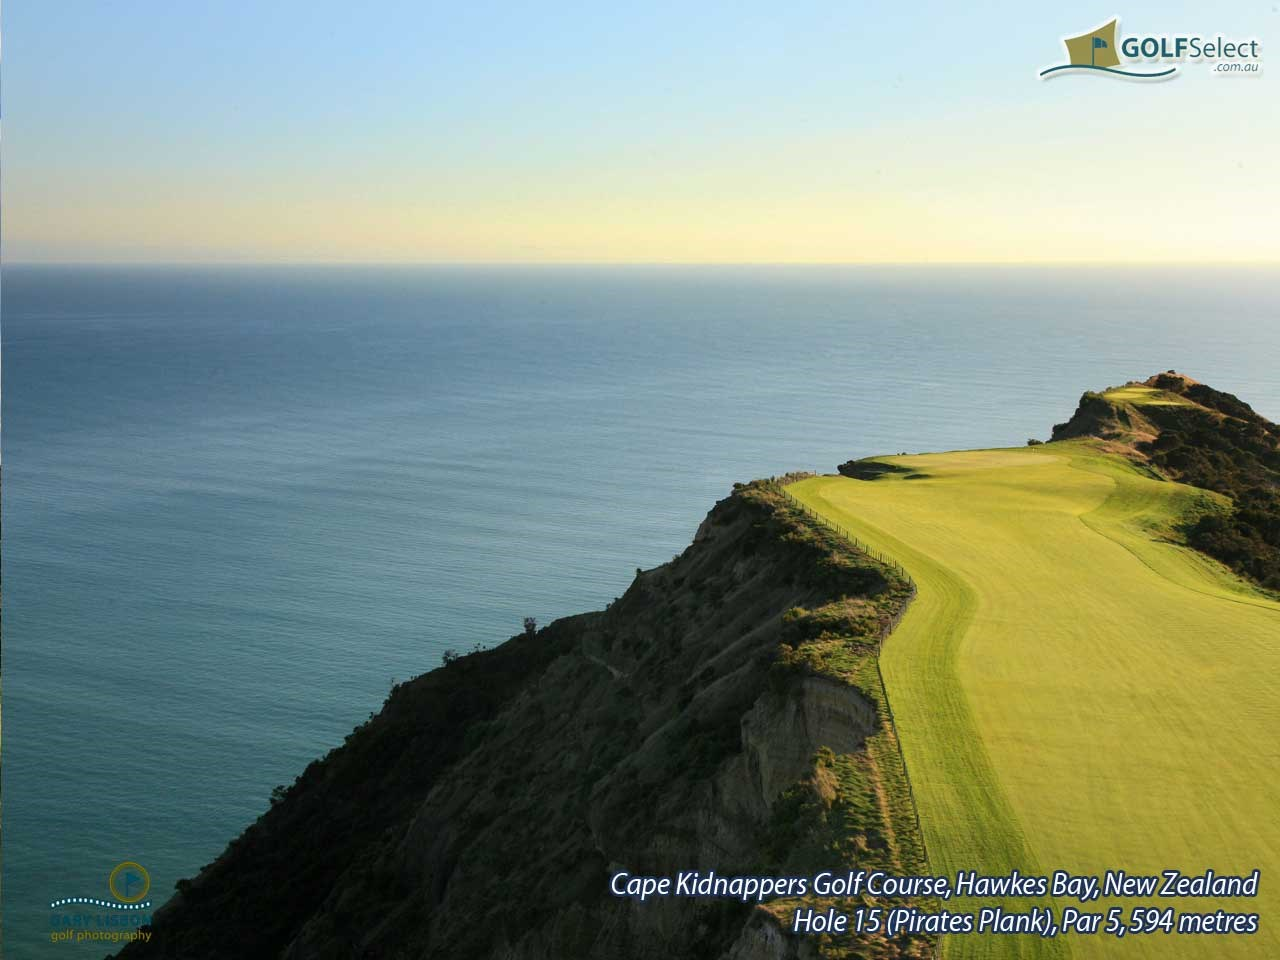 Golfselect Golf Wallpaper Cape Kidnappers Golf Course